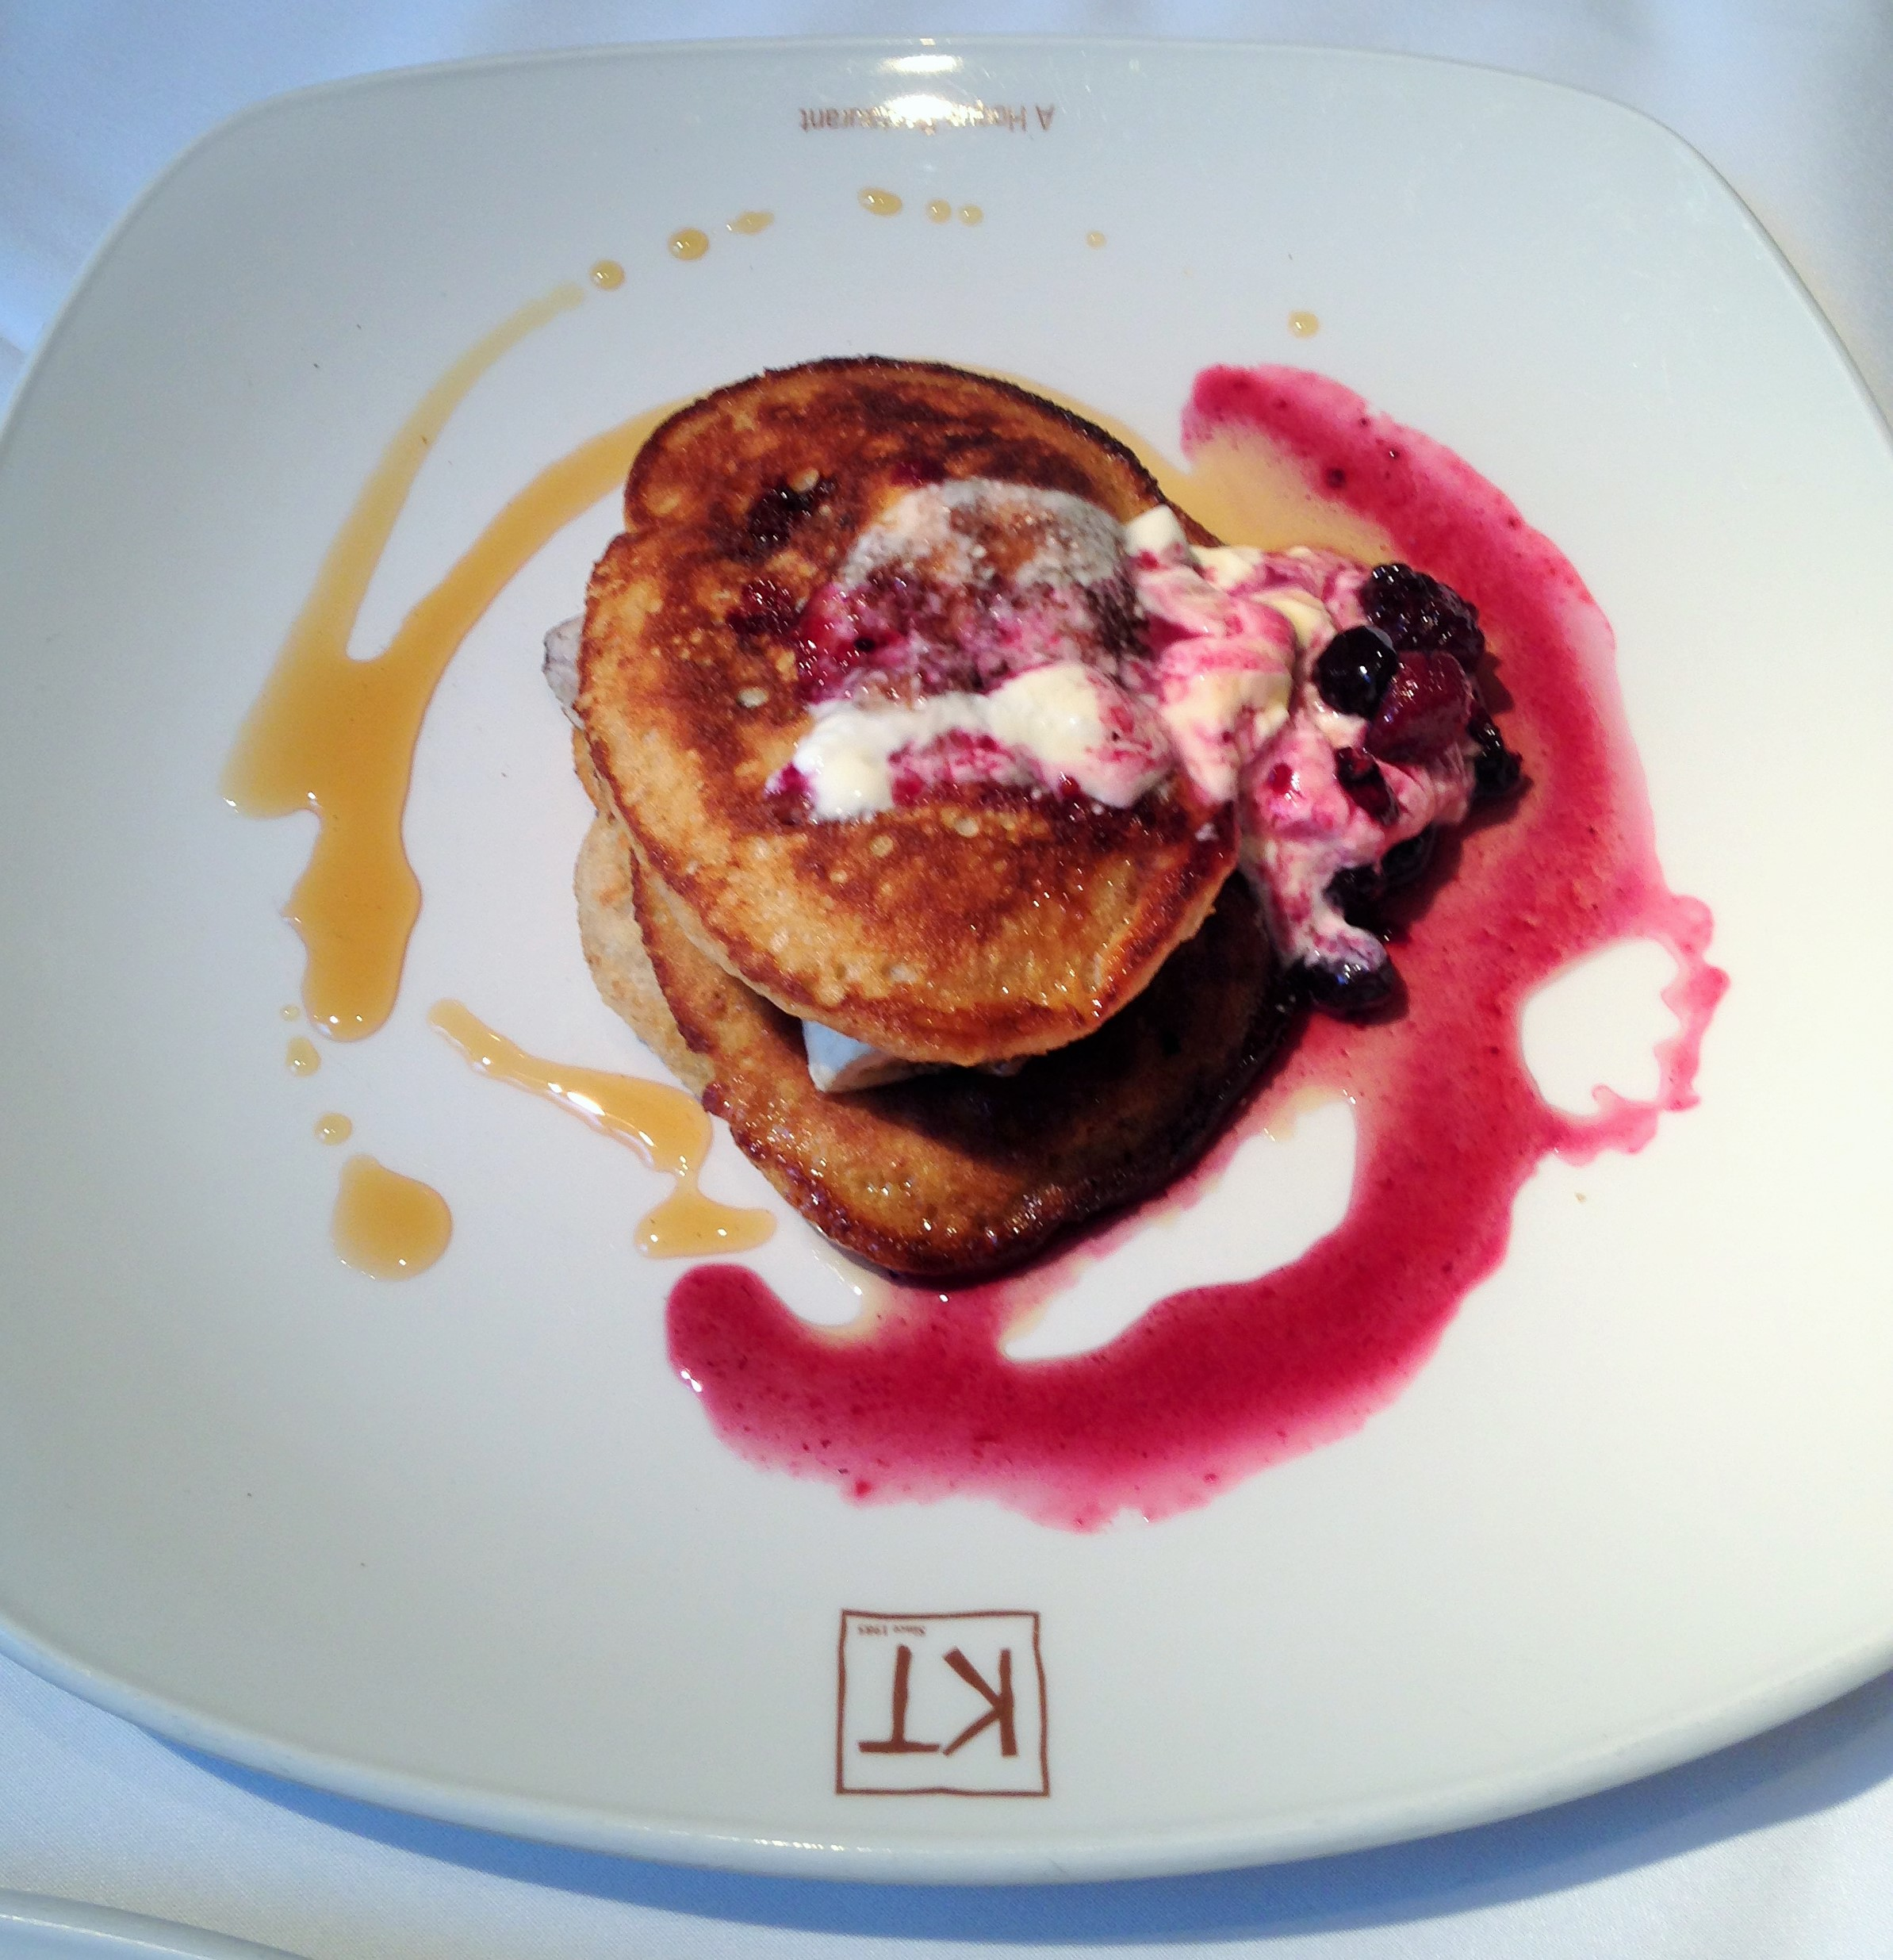 Kennington Tandoori homemade blueberry pancake with caramelised bananas, blueberry, maple syrup - kenningtonrunoff.com